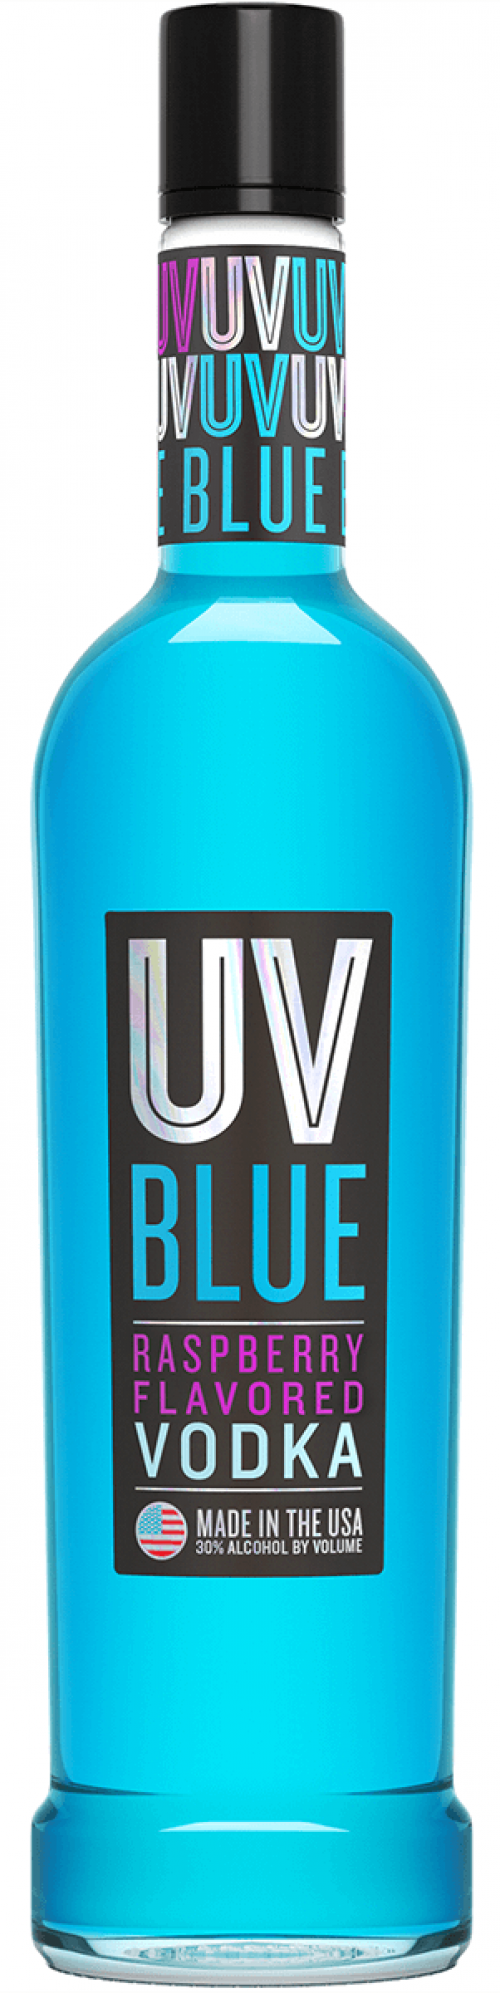 UV Blue Raspberry Vodka 1L